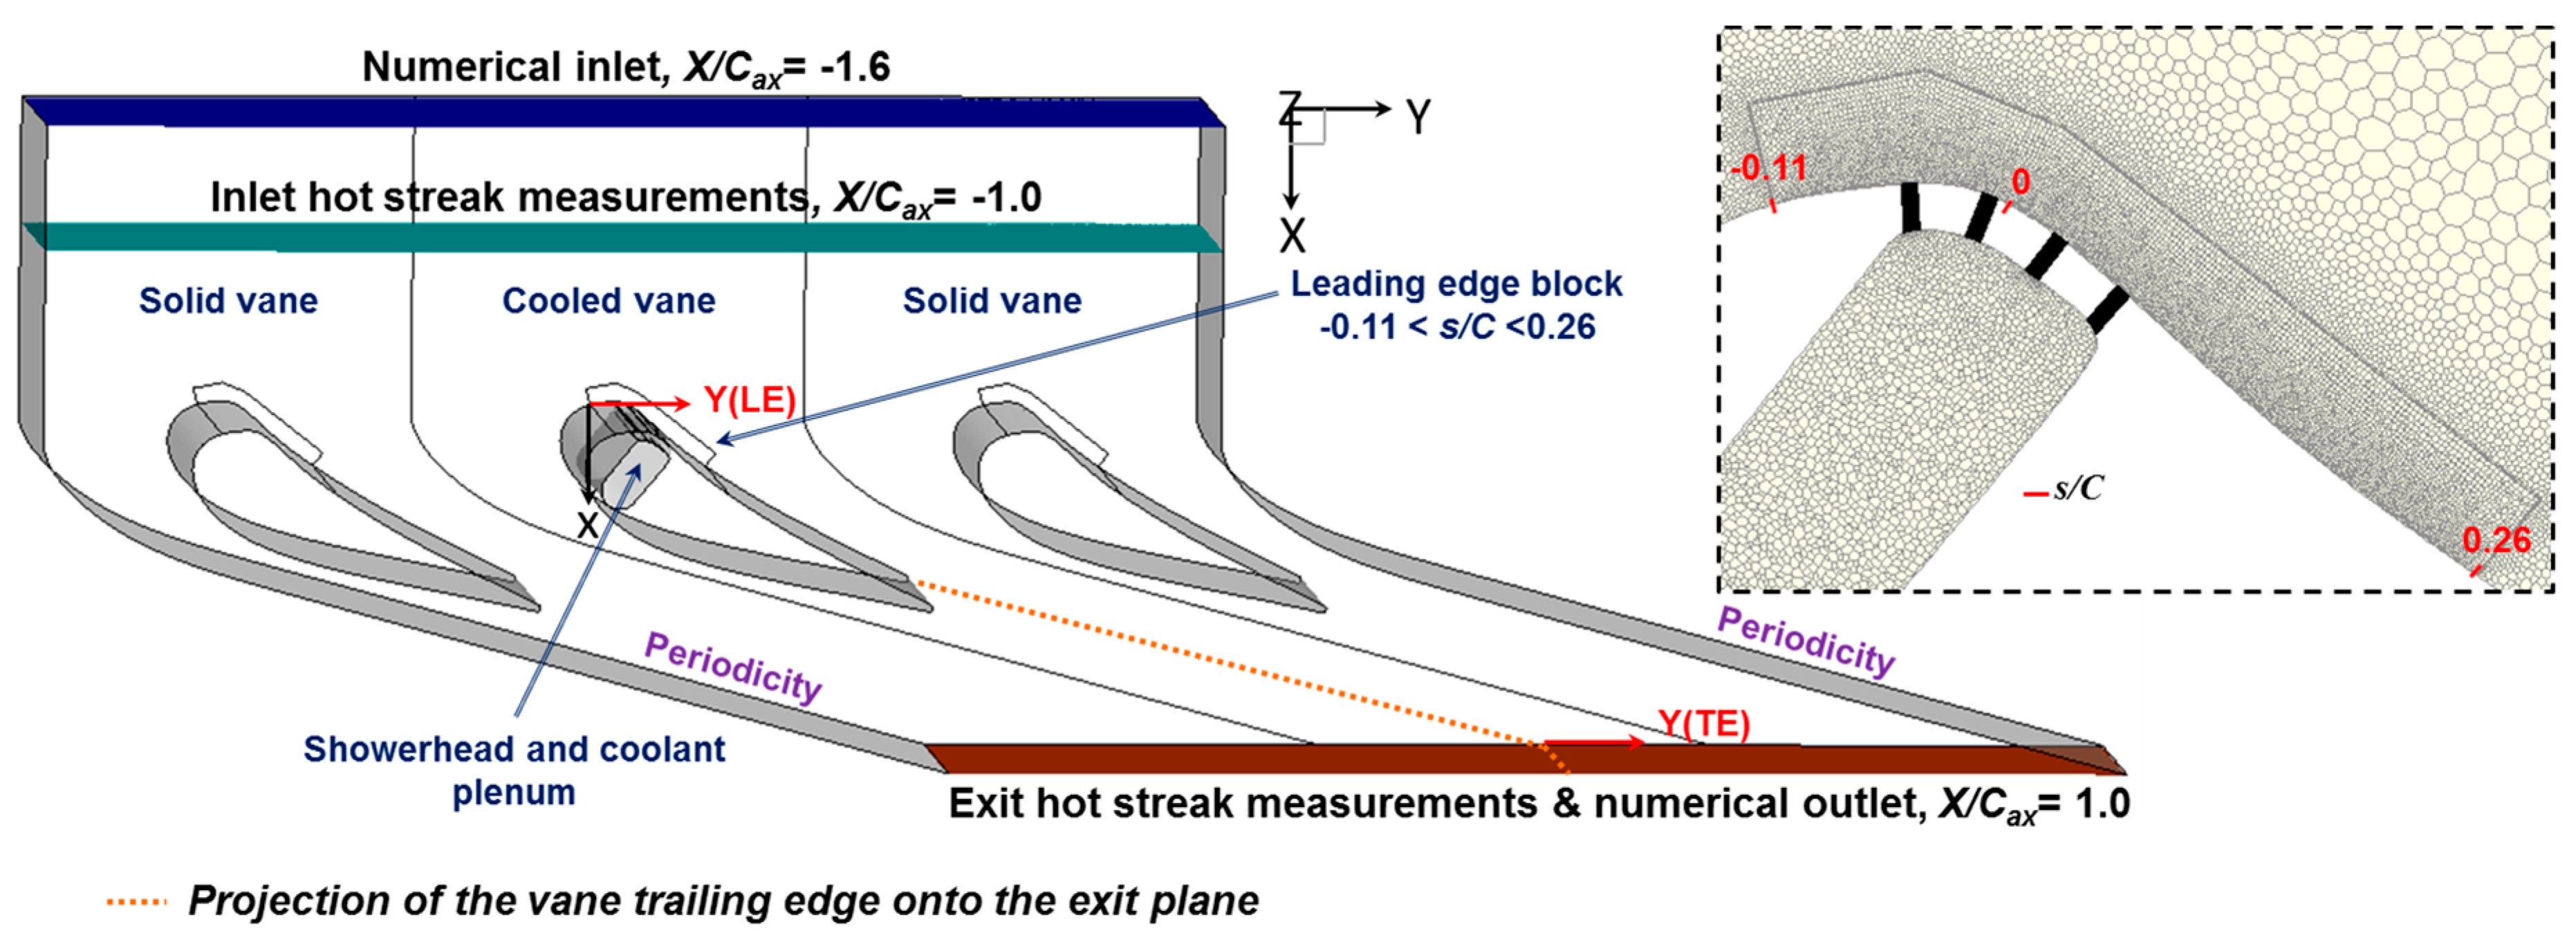 Ijtpp Free Full Text The Effect Of Hot Streaks On A High Joslyn Clark Wiring Diagrams 02 00015 G005